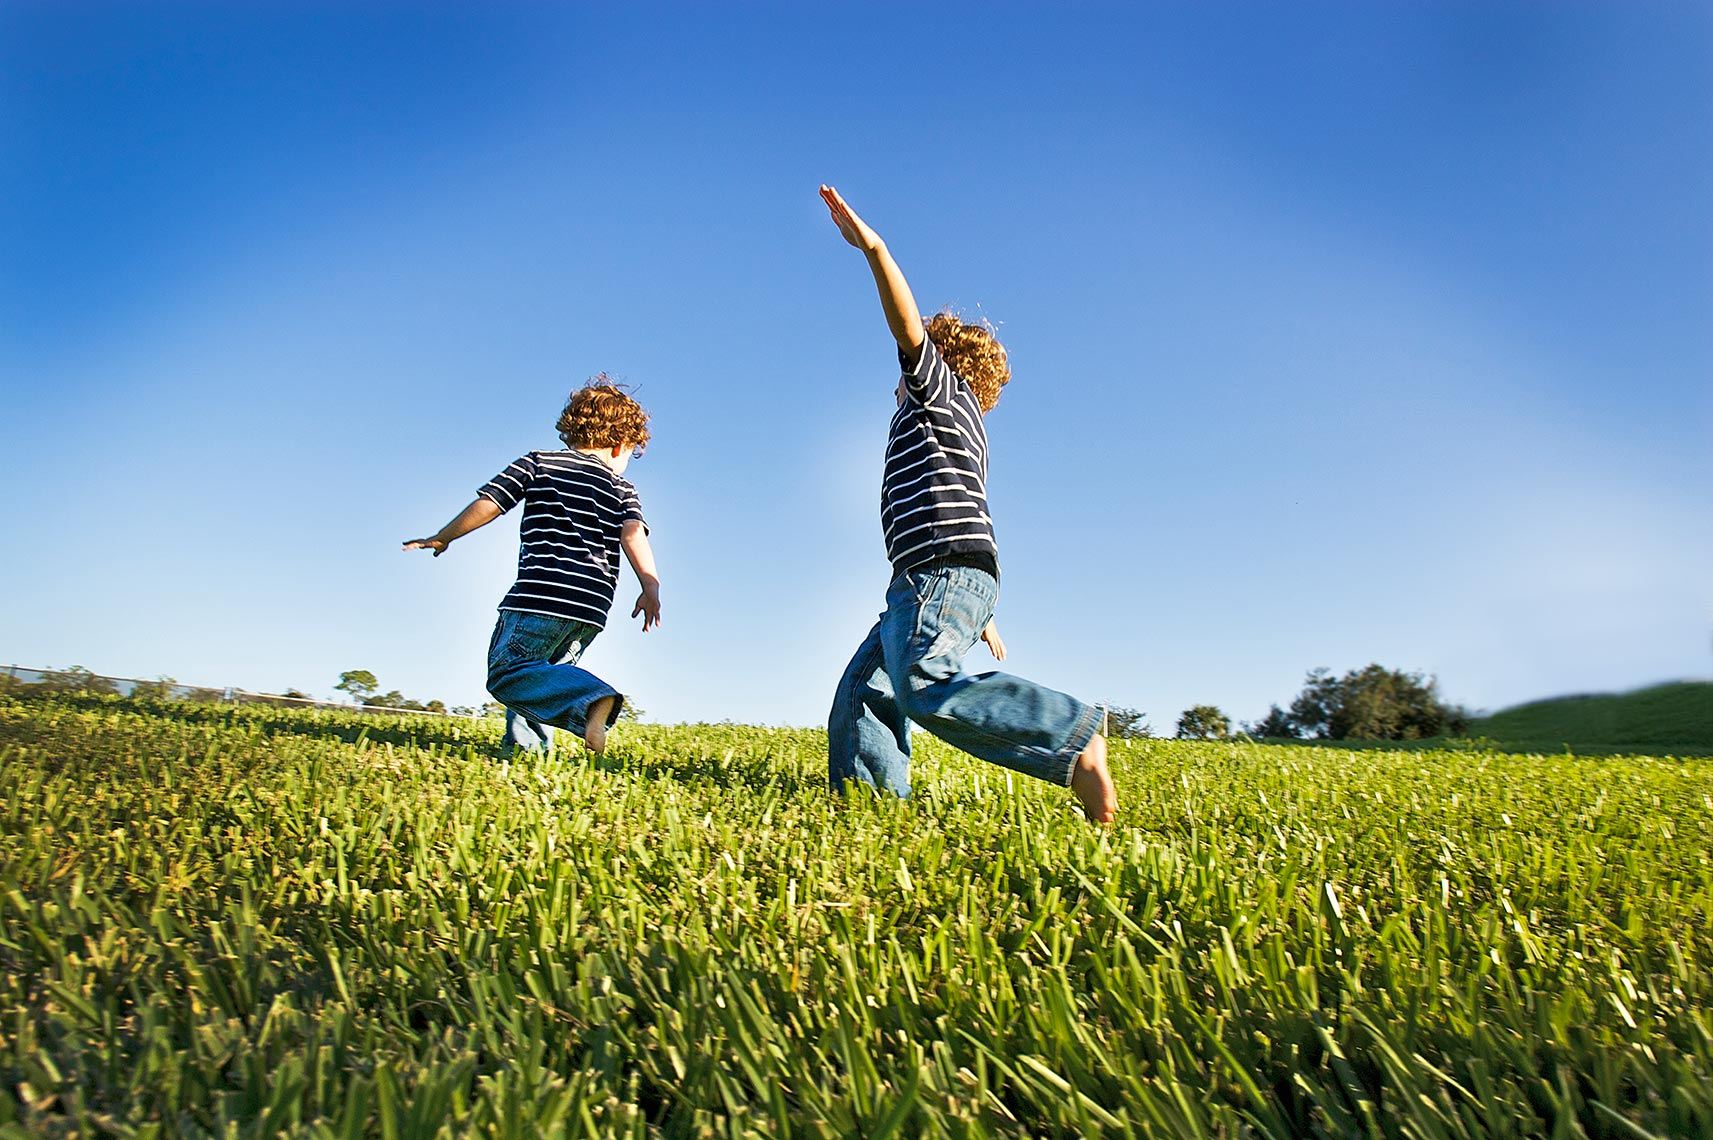 lifestyle photography of two boys playing in grass Palm City, Stuart Florida photography Big Fish Studios_Robert Holland .jpg.jpg